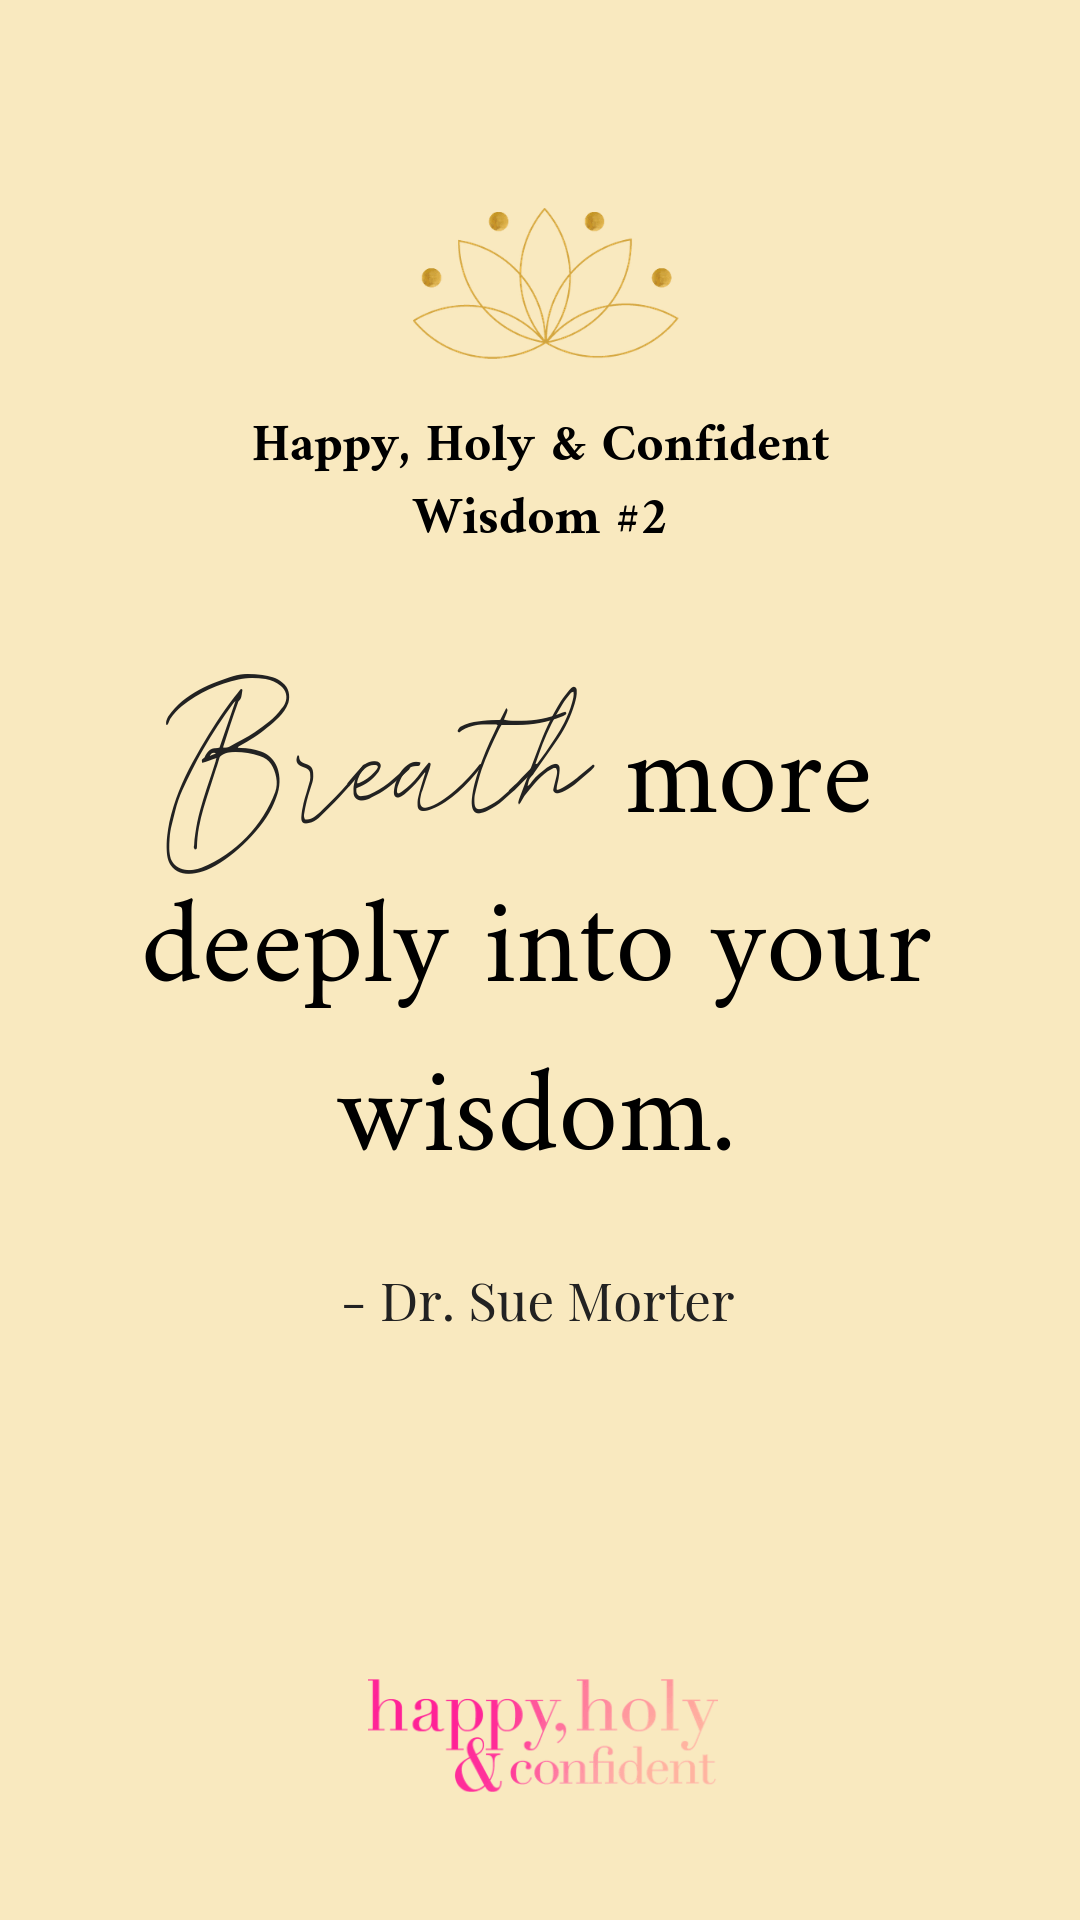 Breathe more deeply into your wisdom